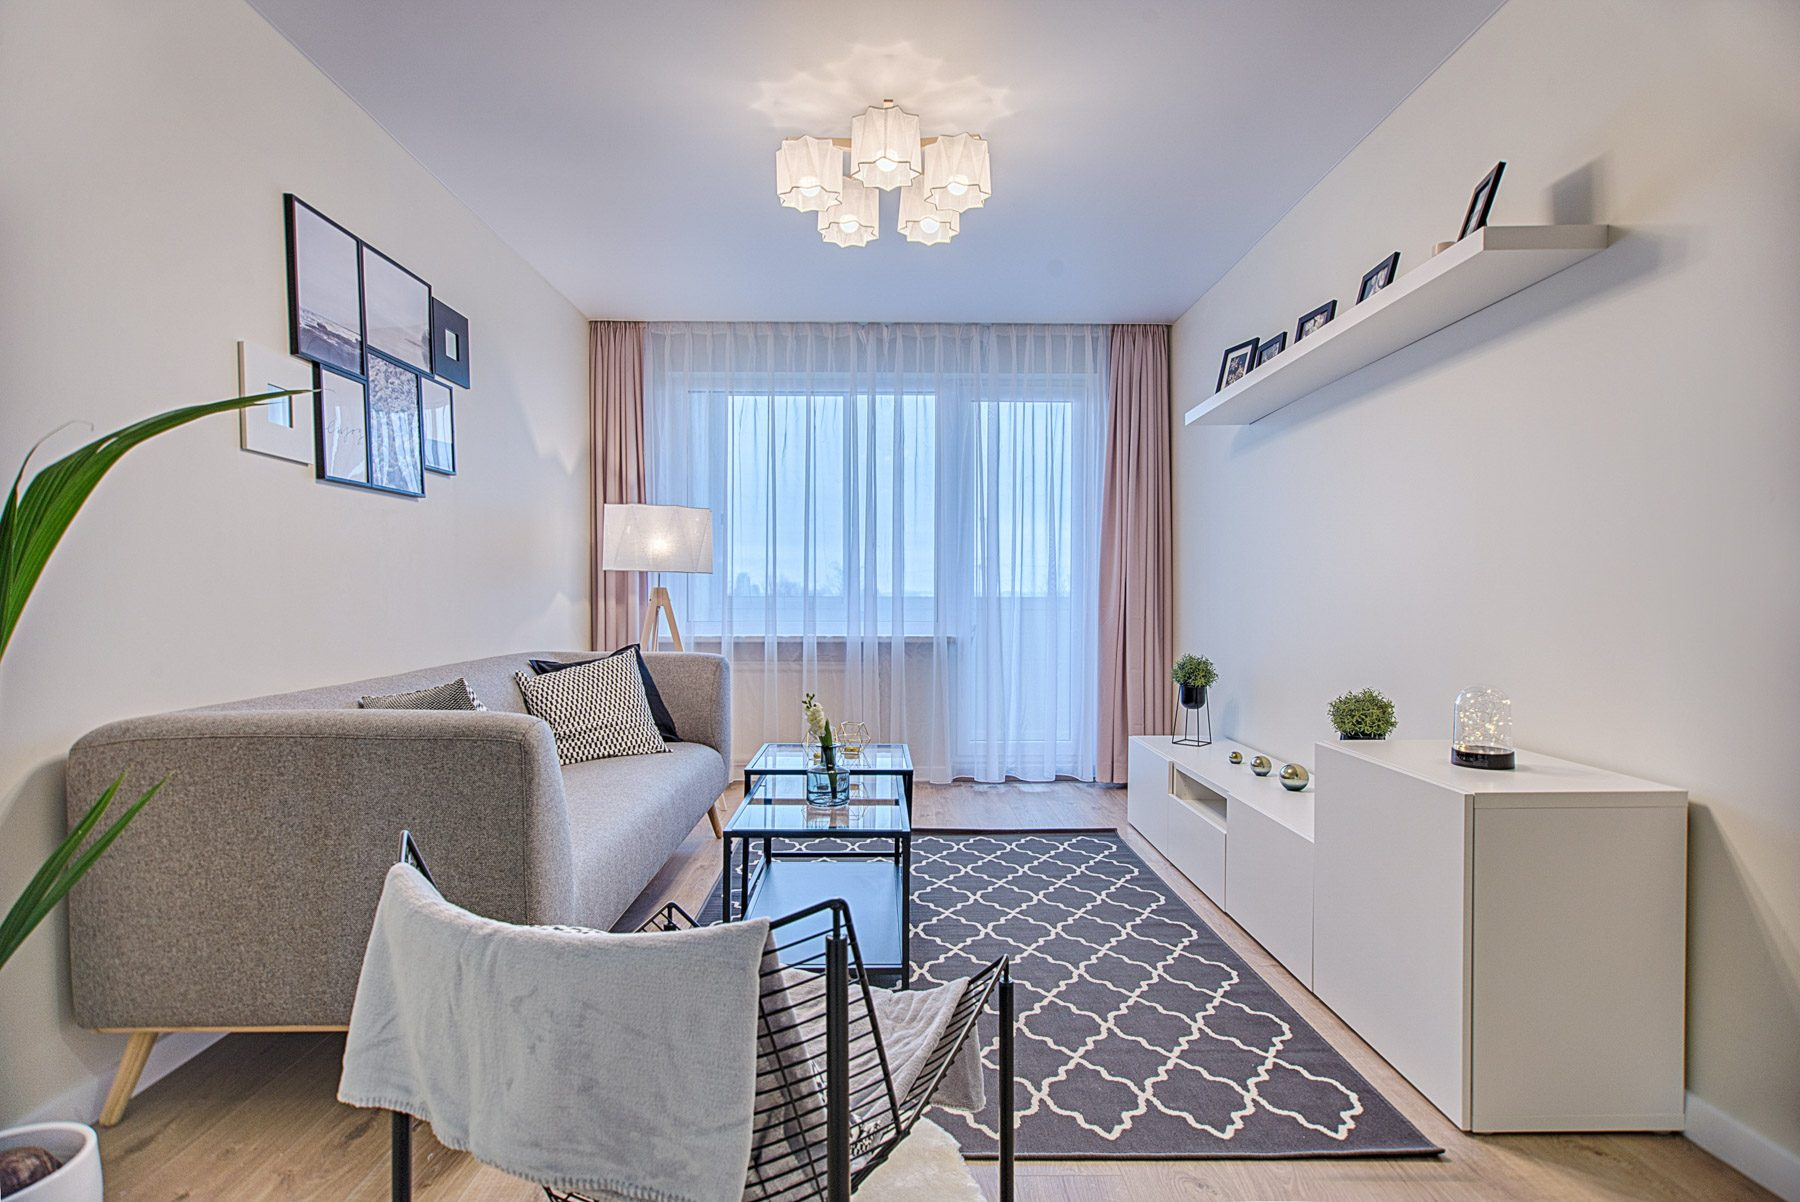 Wave or s fold curtains can make low ceilings feel higher.